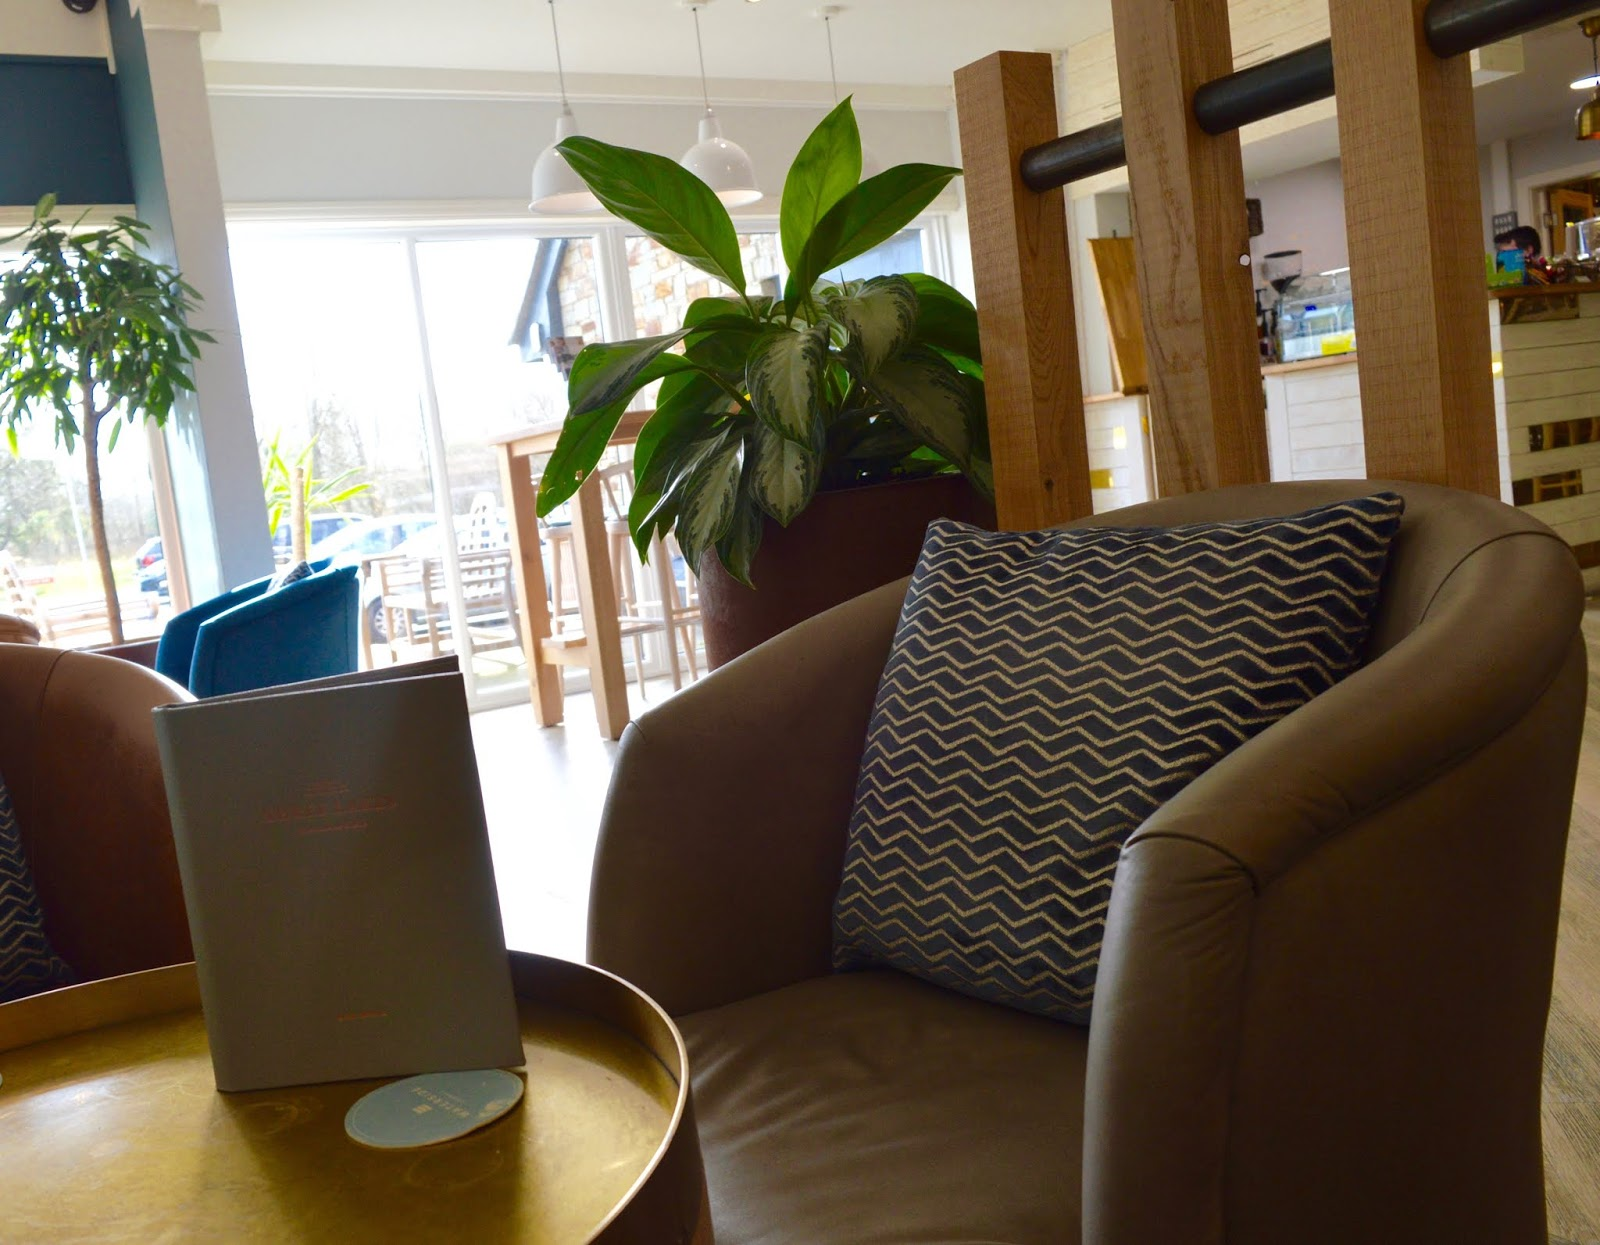 Waterside Cornwall Review | Self-Catering Lodges Near The Eden Project - lounge area / cafe